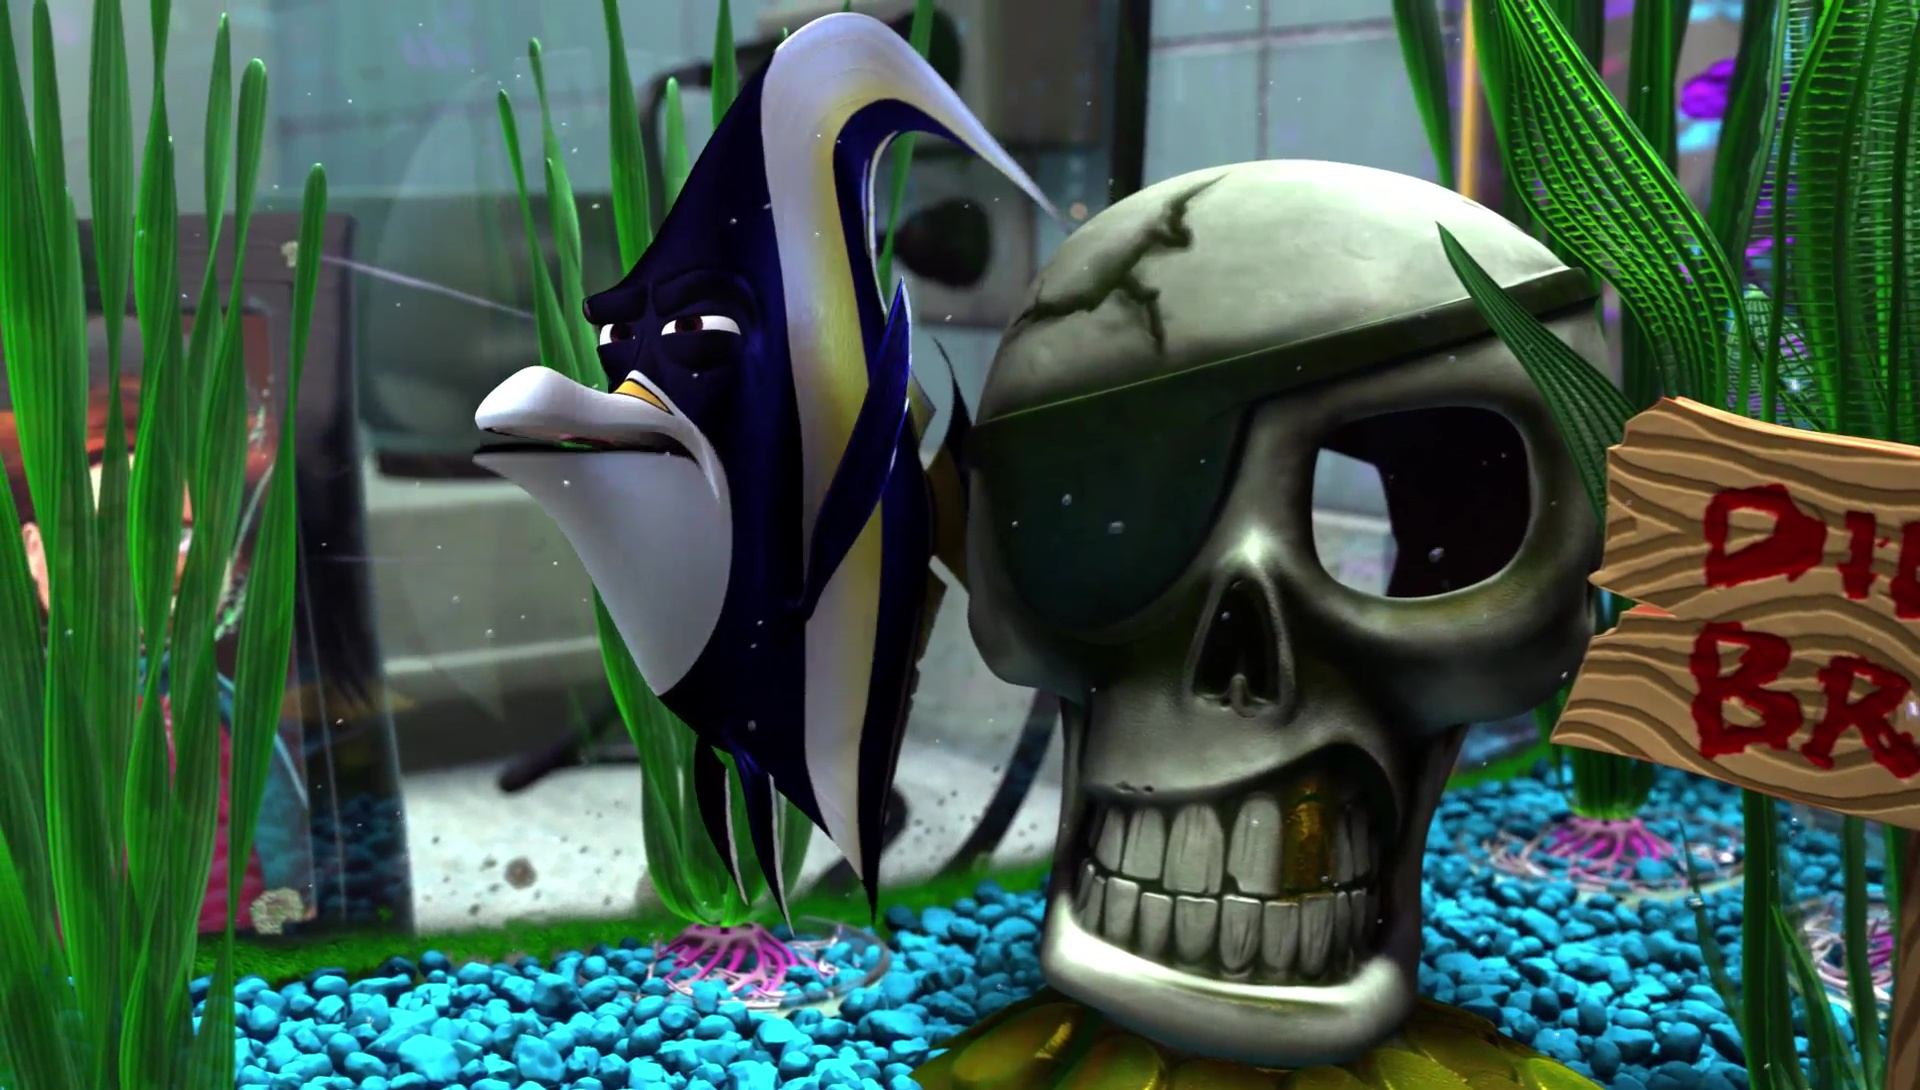 gill monde finding nemo disney pixar personnage character